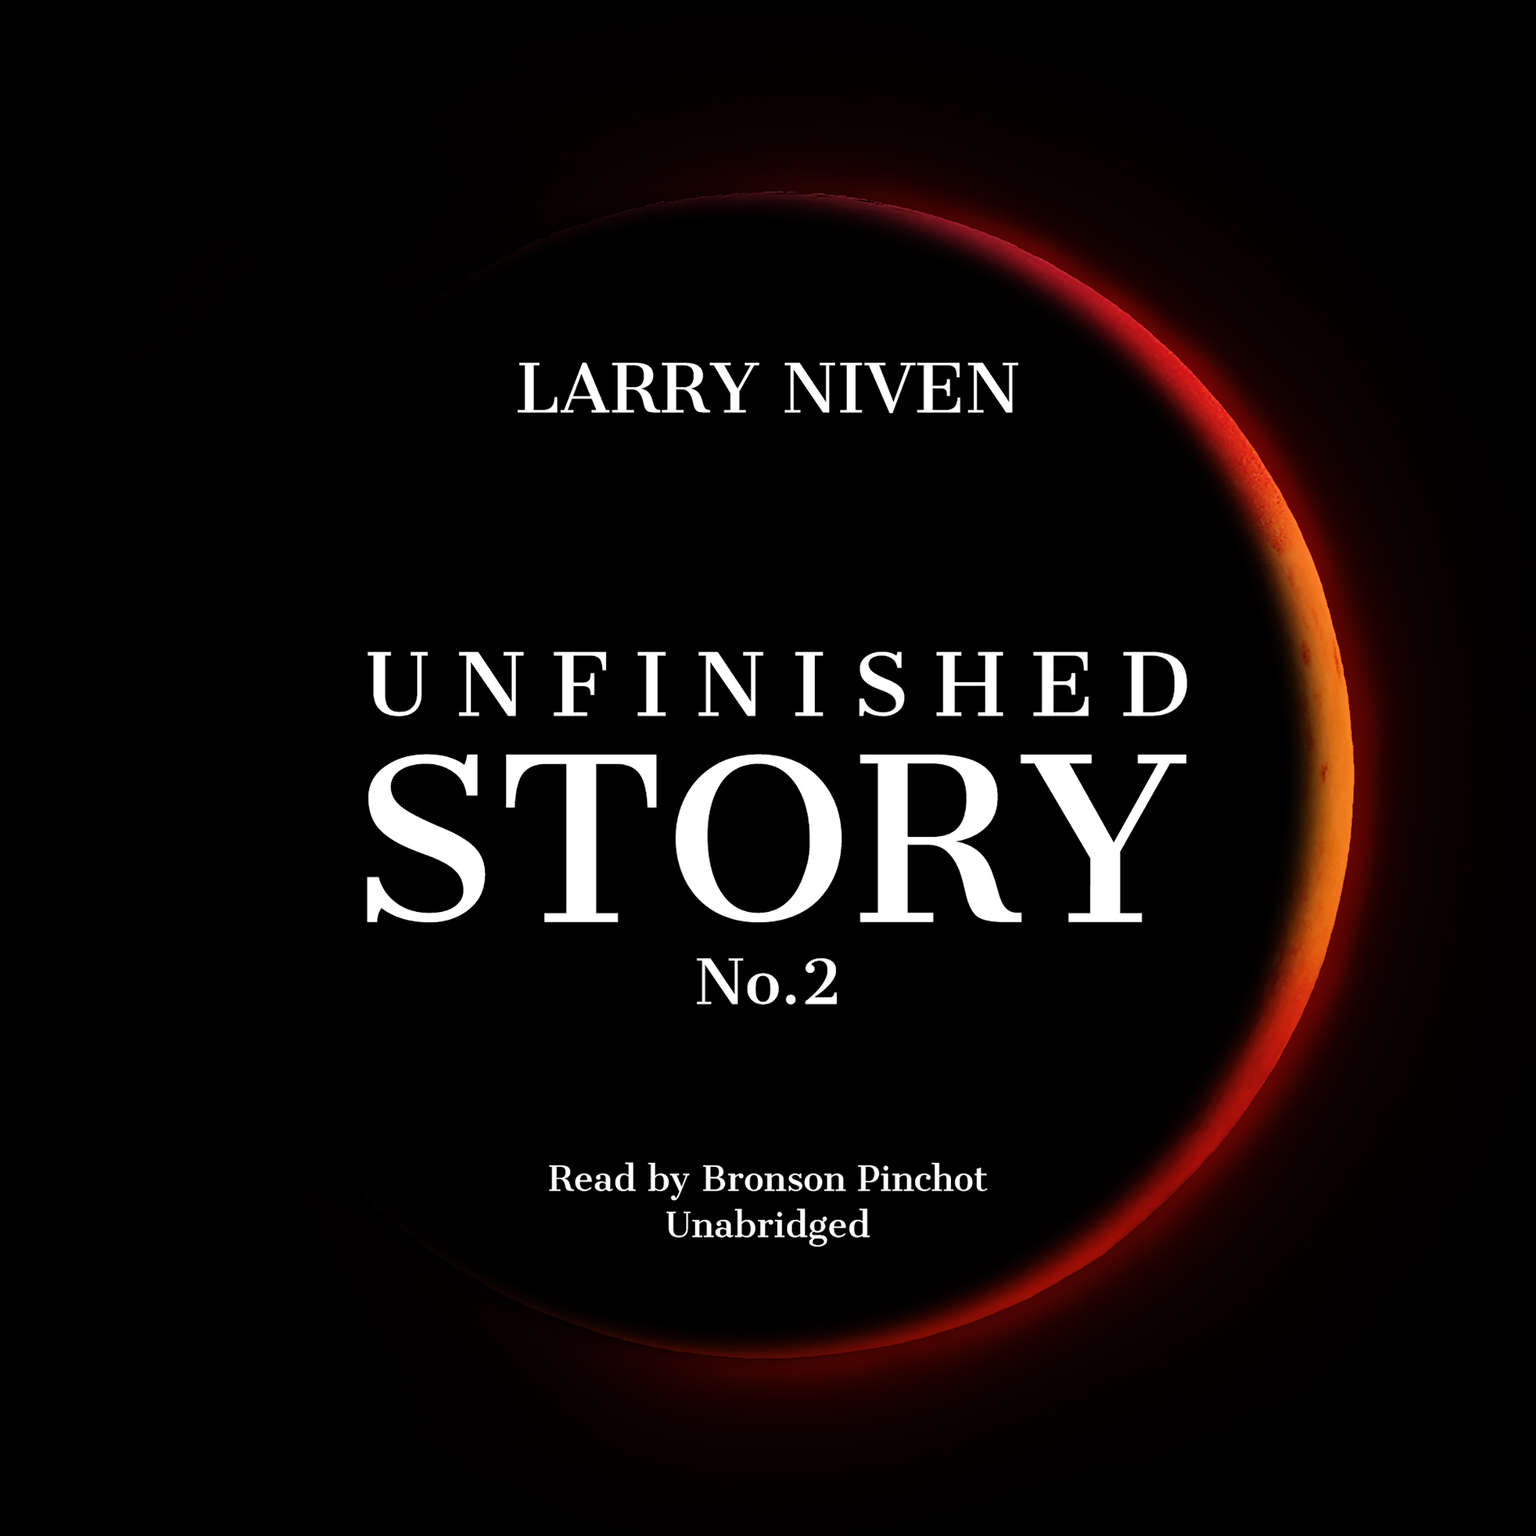 Unfinished Story No. 2 Audiobook, by Larry Niven